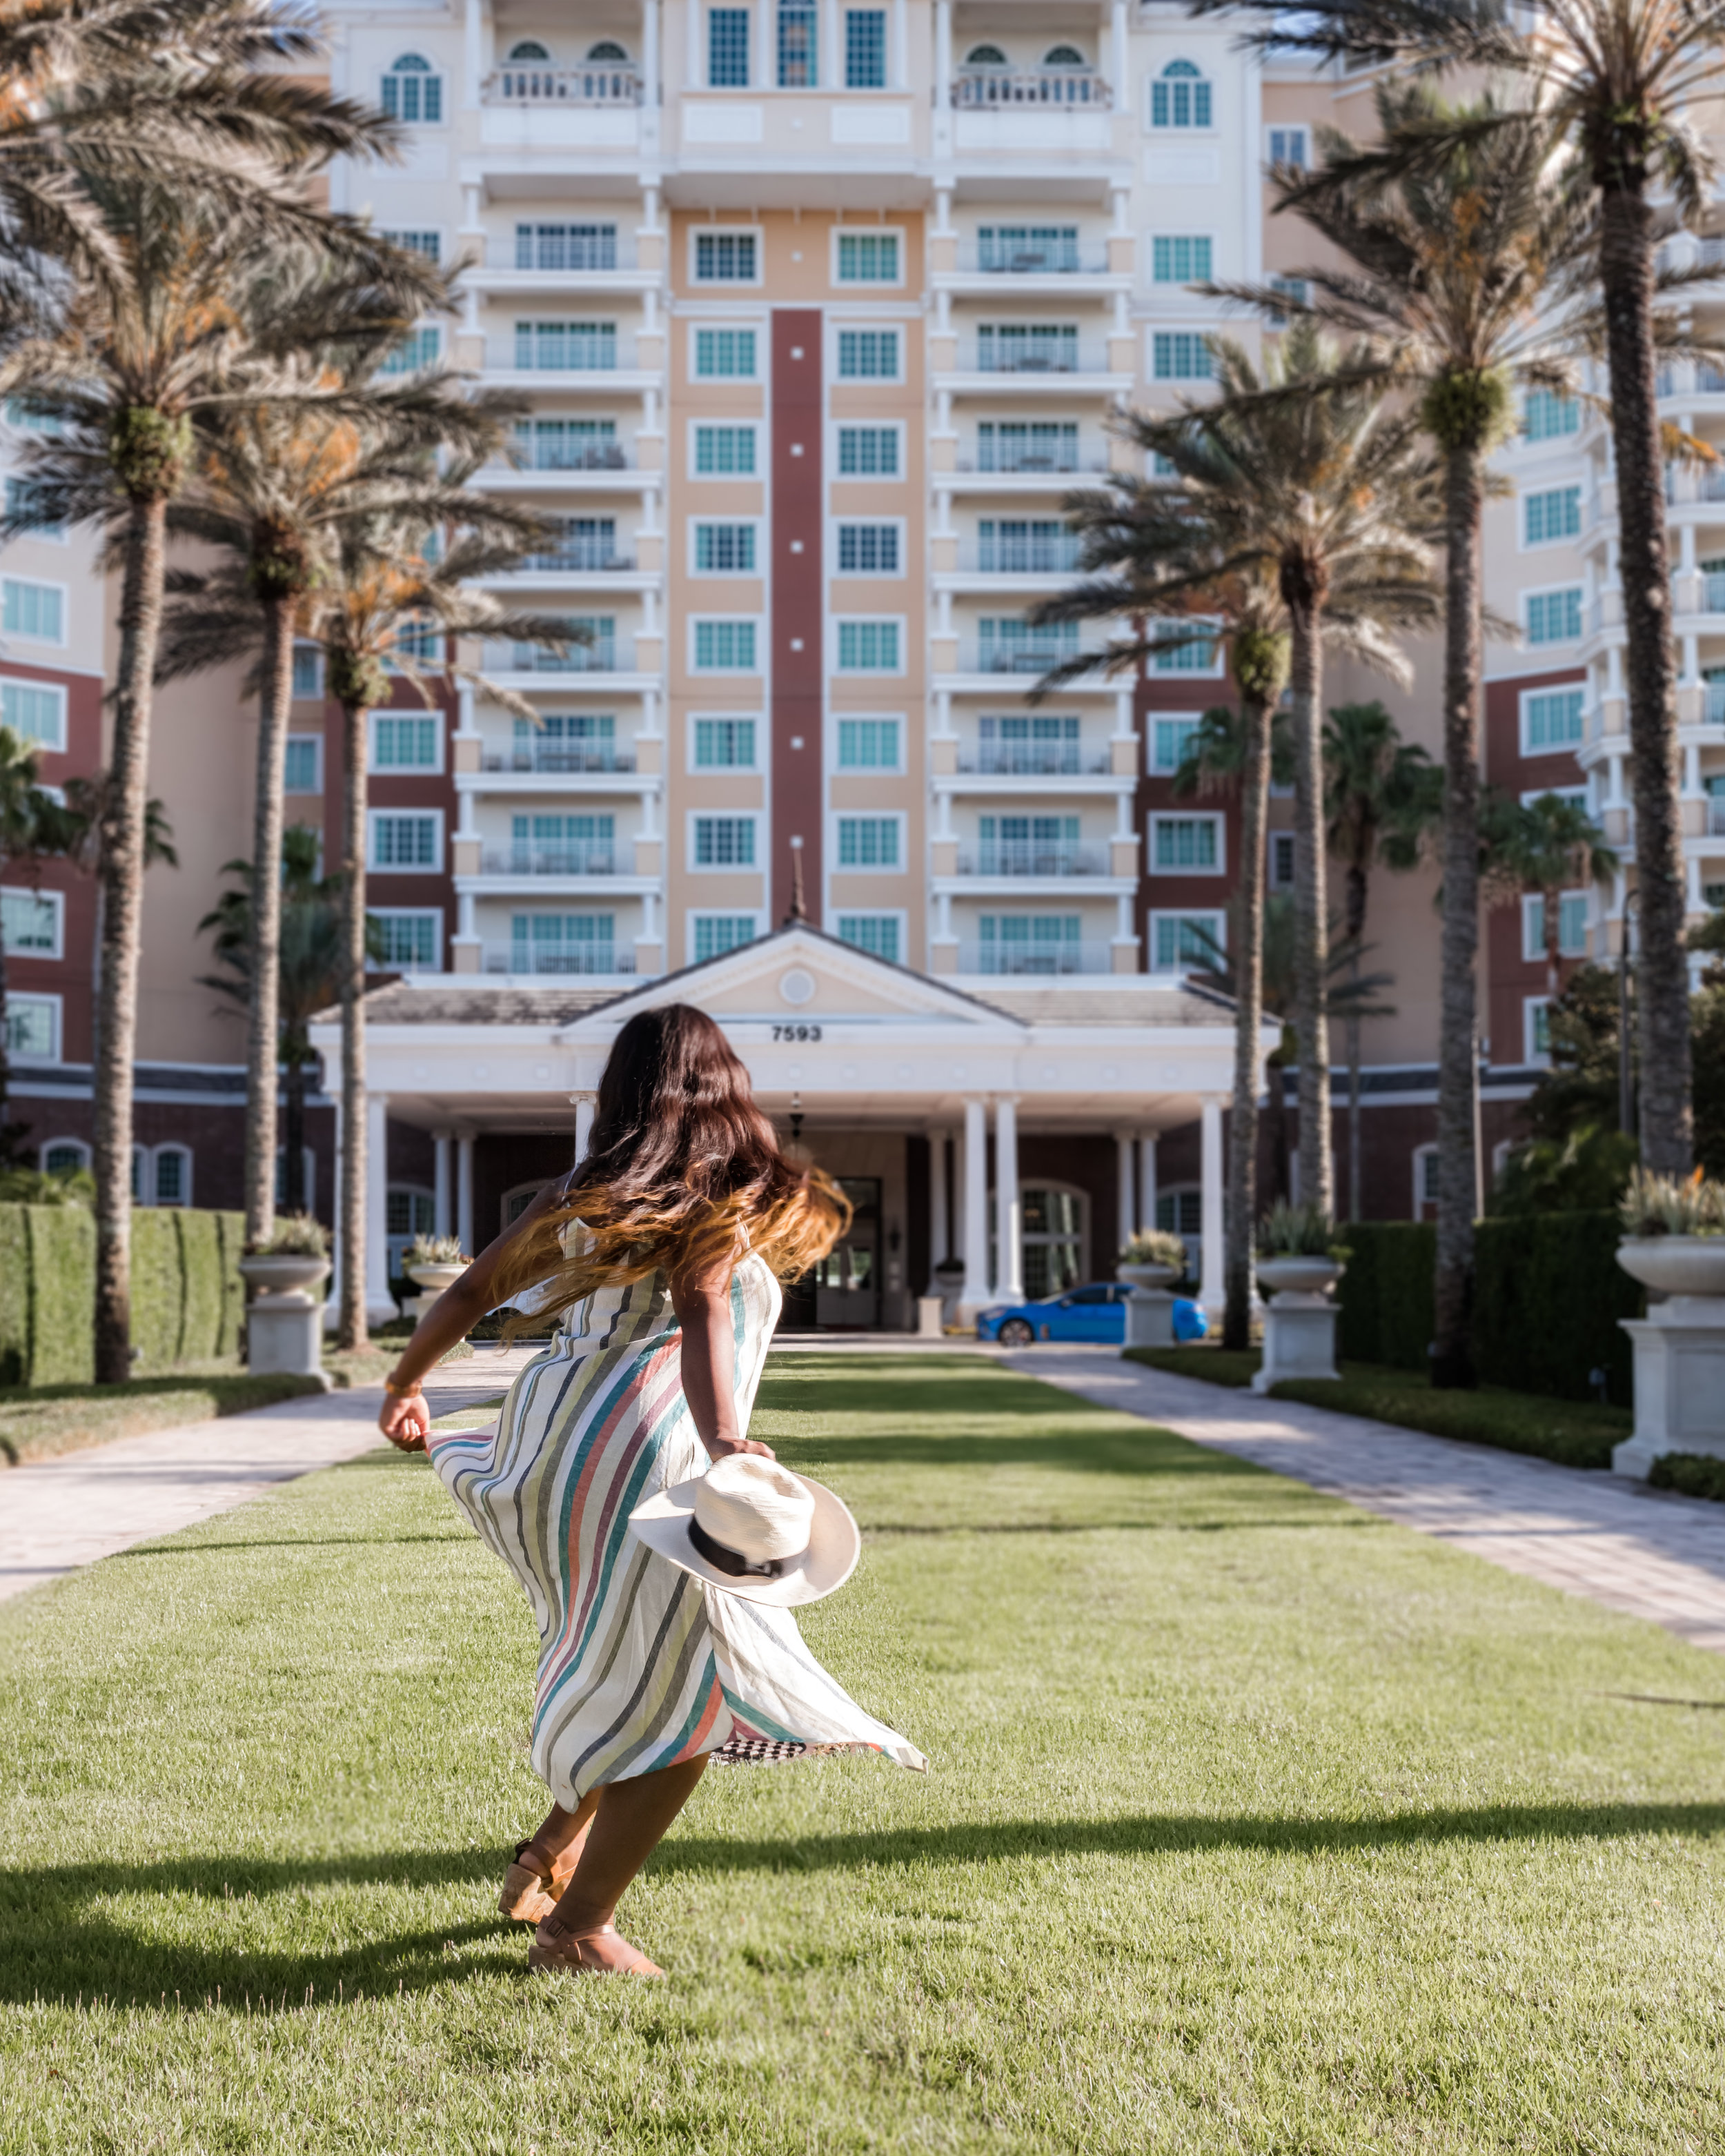 reunion-resort-kissimmee-florida-where-to-stay